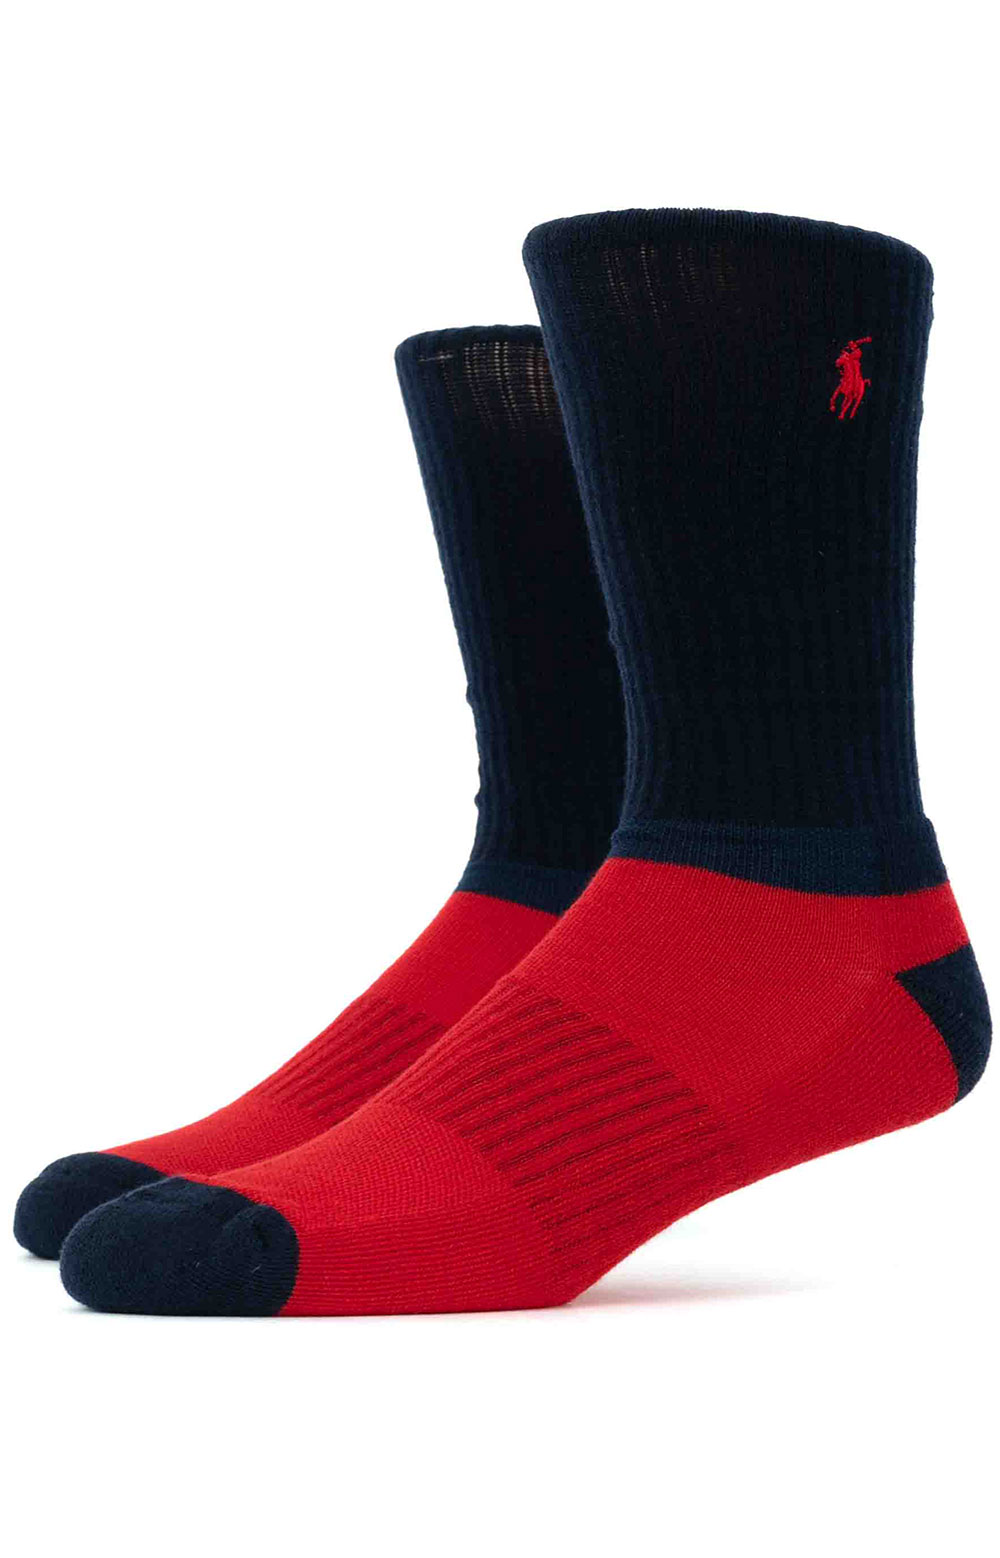 Colorblock Cushioned Crew Socks - 6 Pack 8